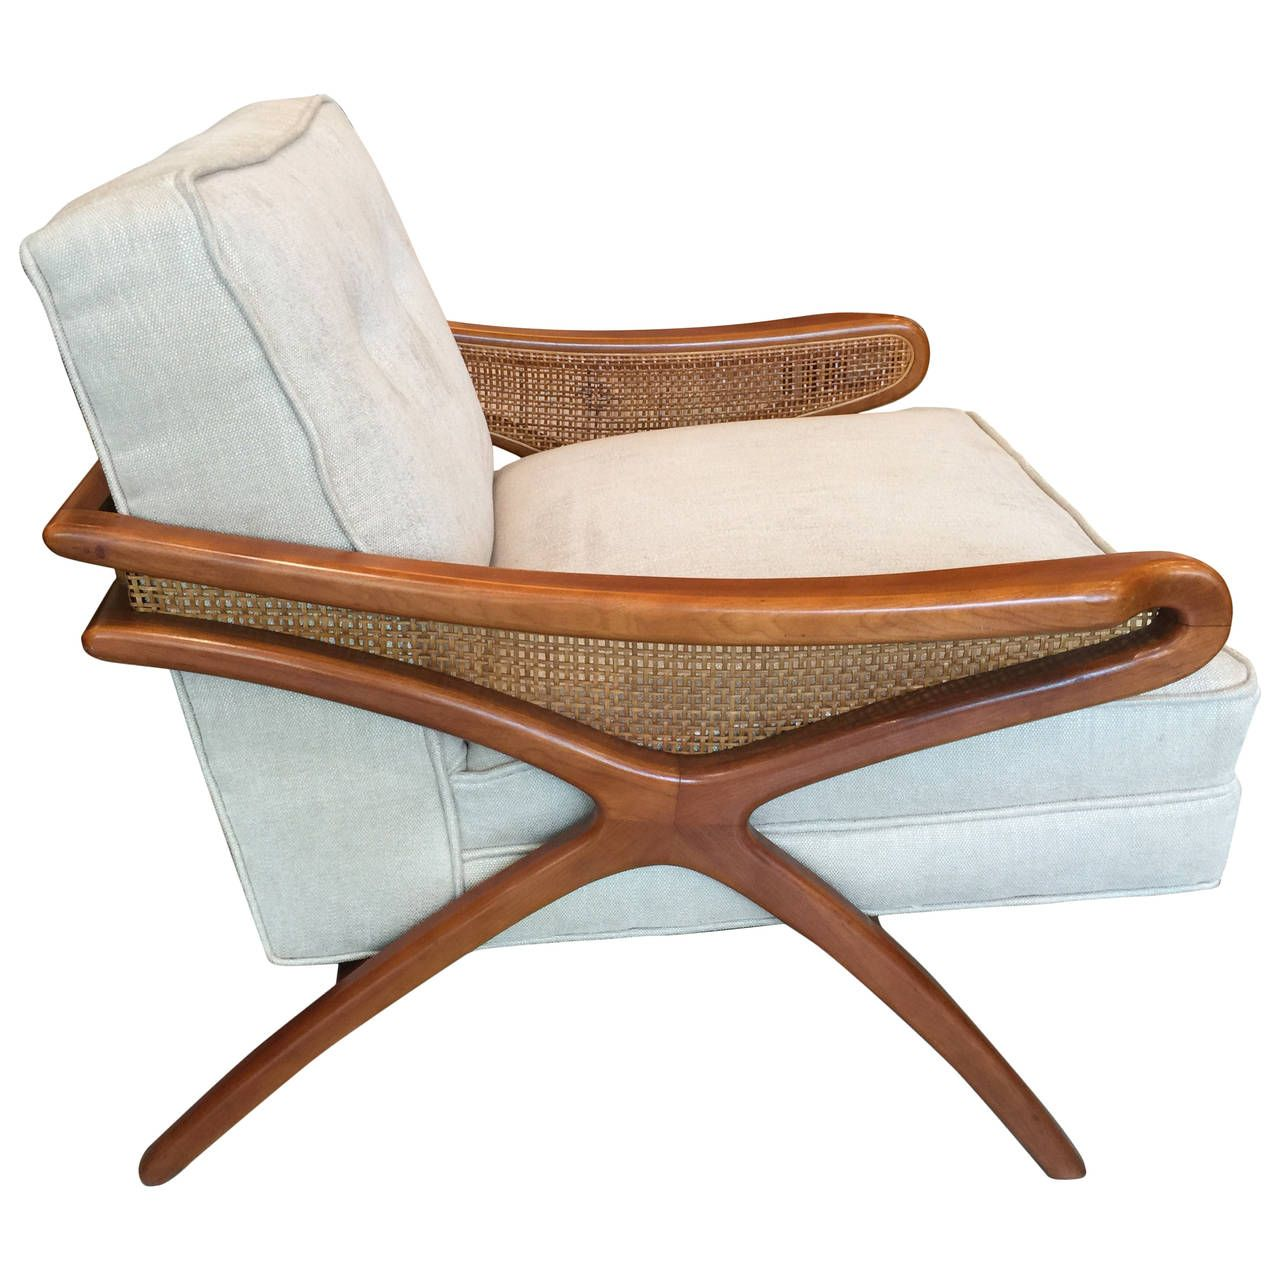 MidCentury Sculptural Club Chair with Rattan Detail